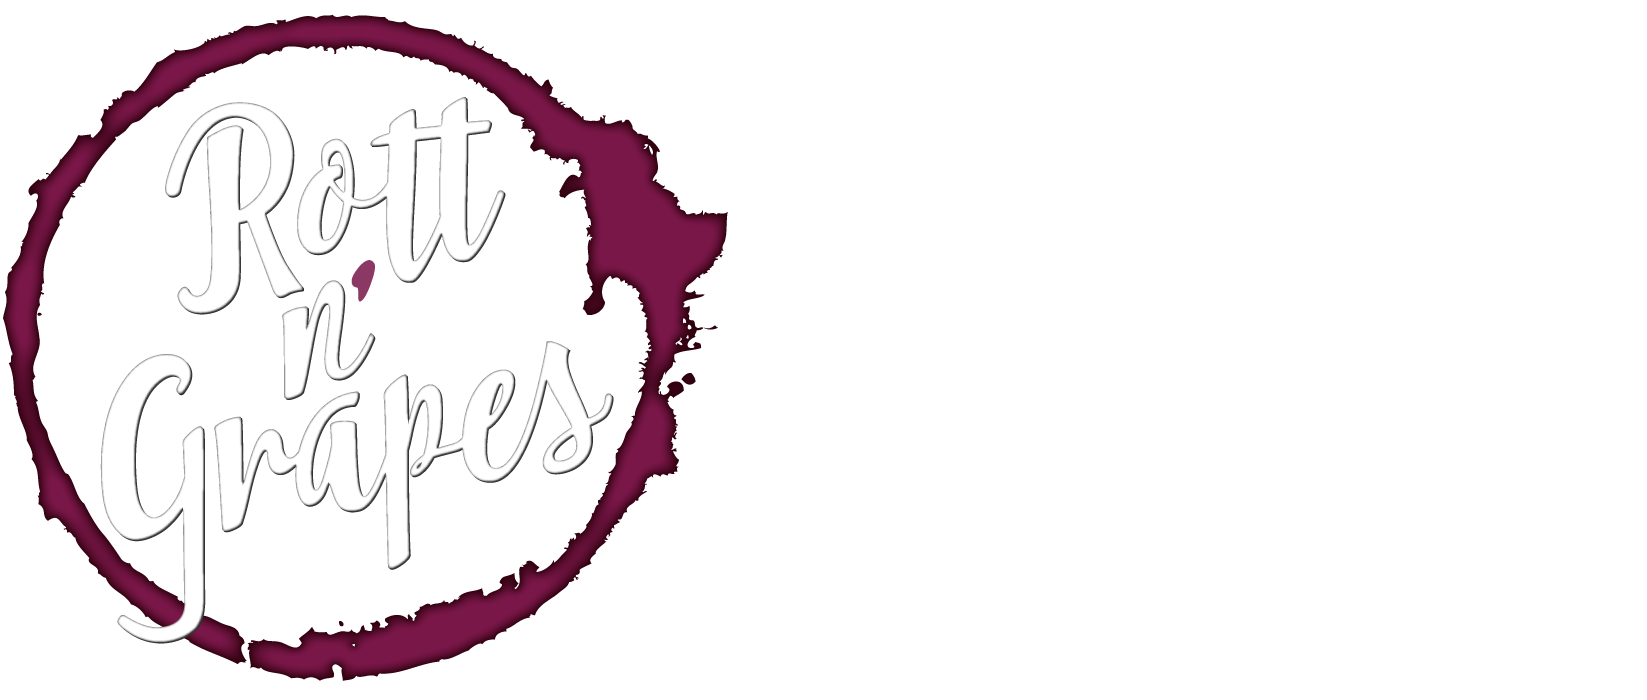 Rott n' Grapes Mobile Retina Logo